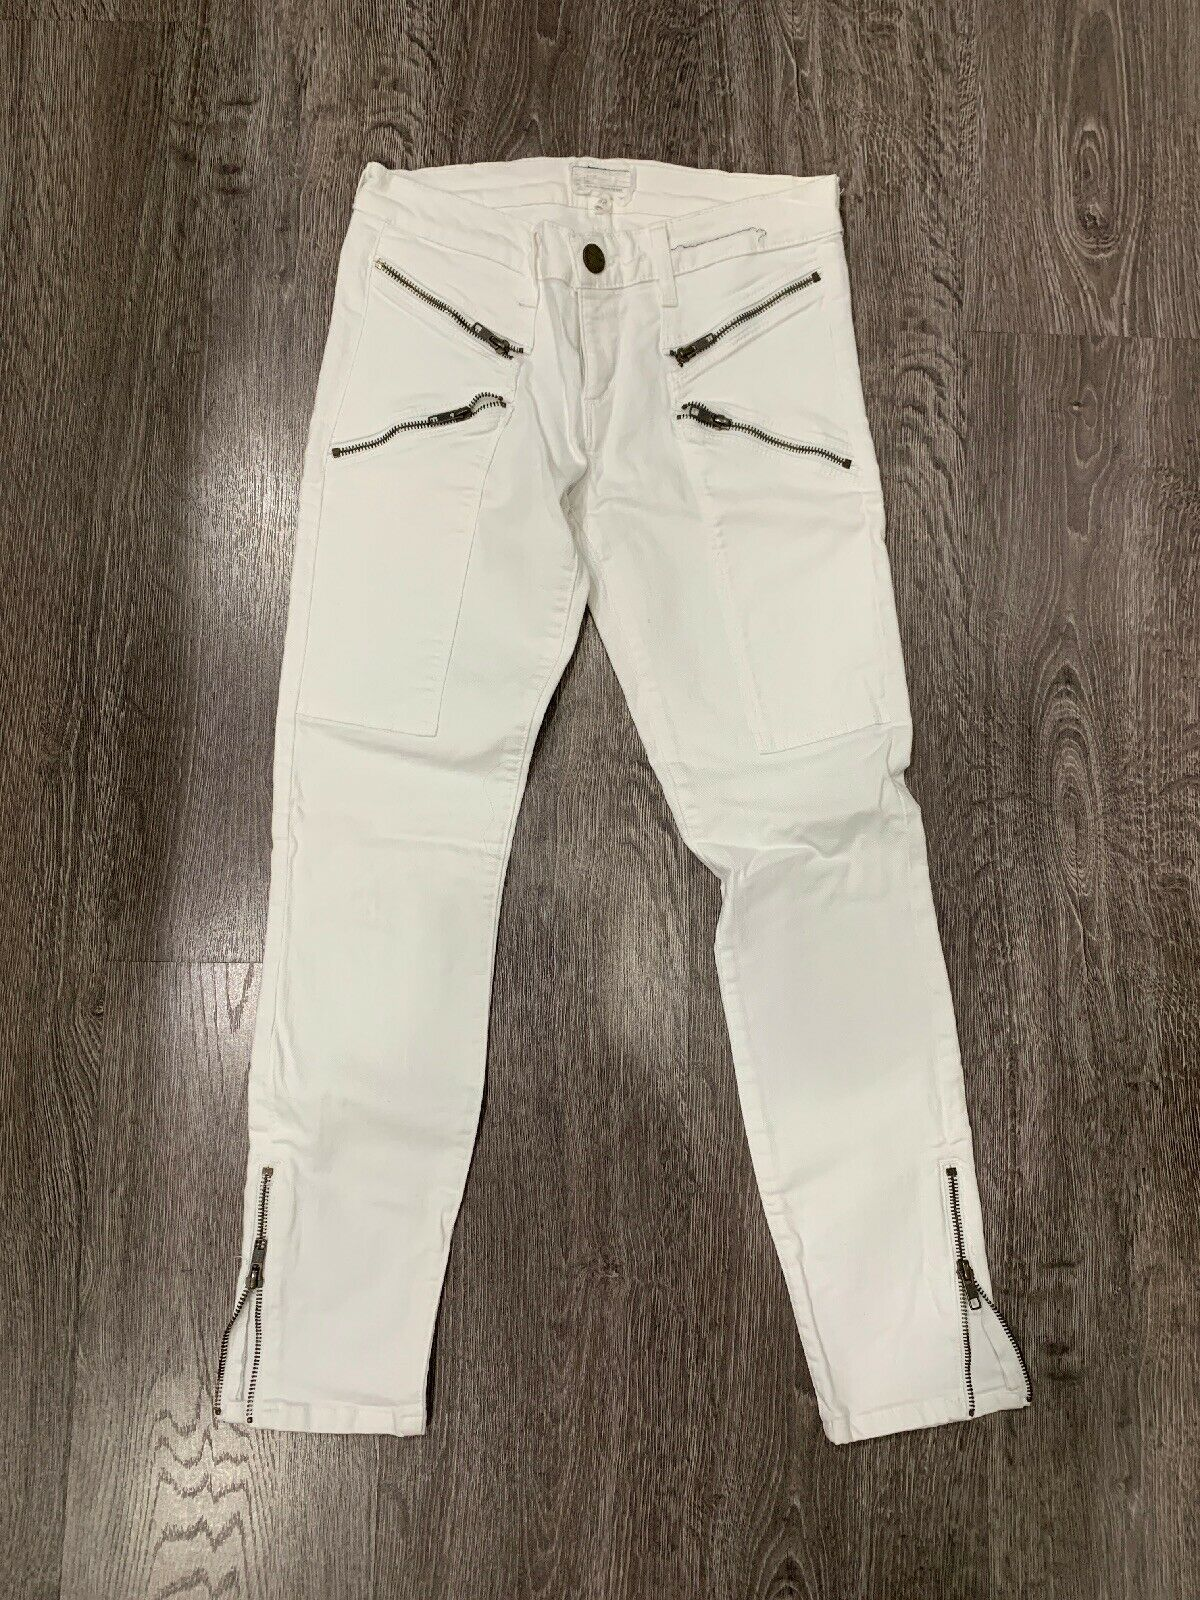 Current Elliot White Zippered Skinny Jeans Size 28 EUC